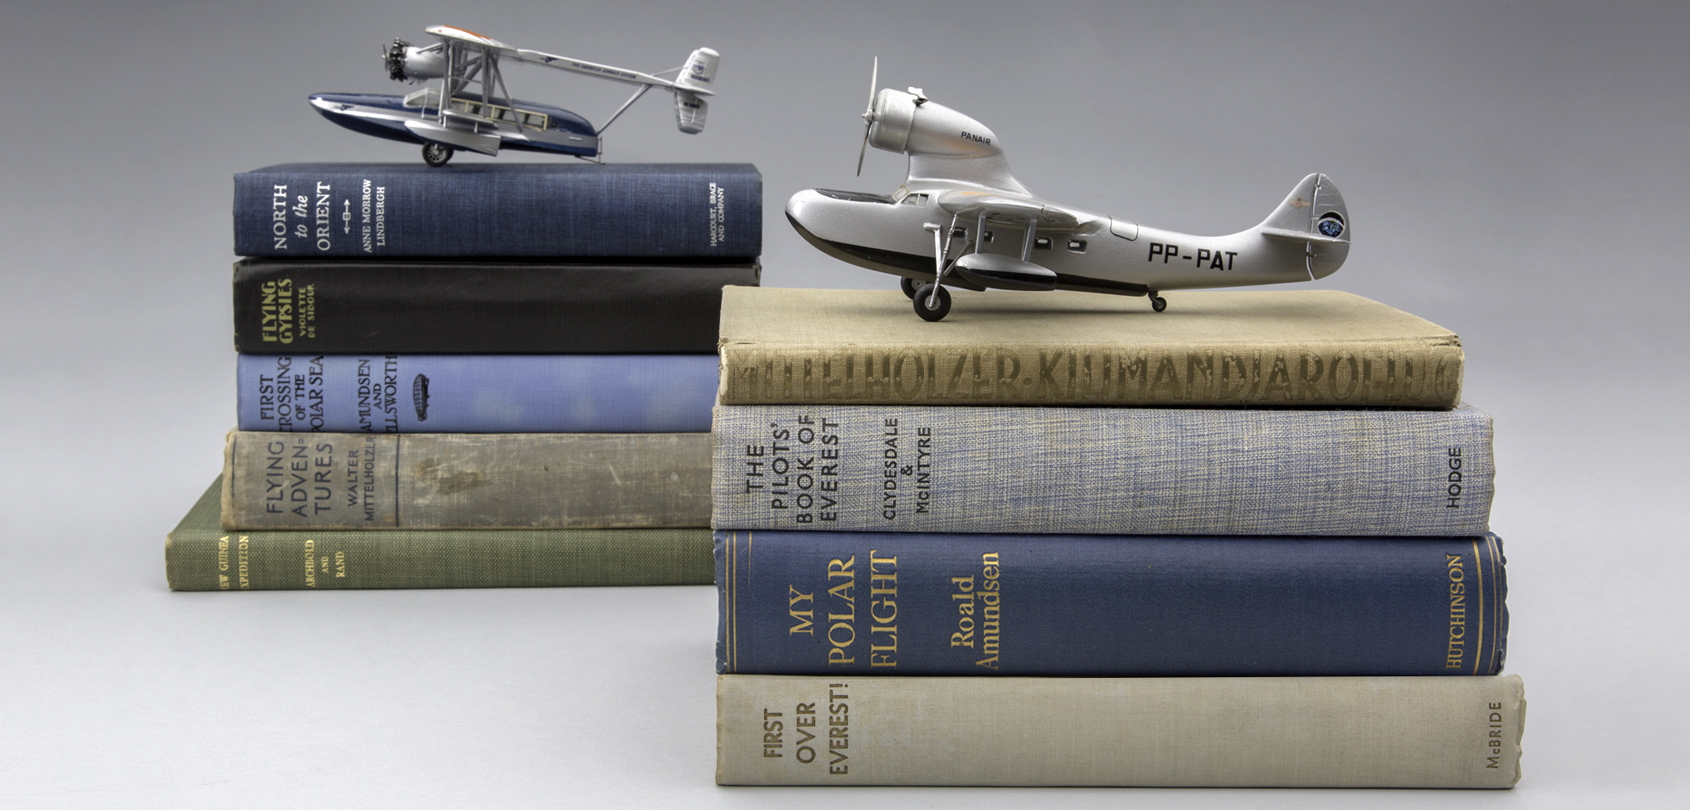 Transformation at the Aviation Museum & Library